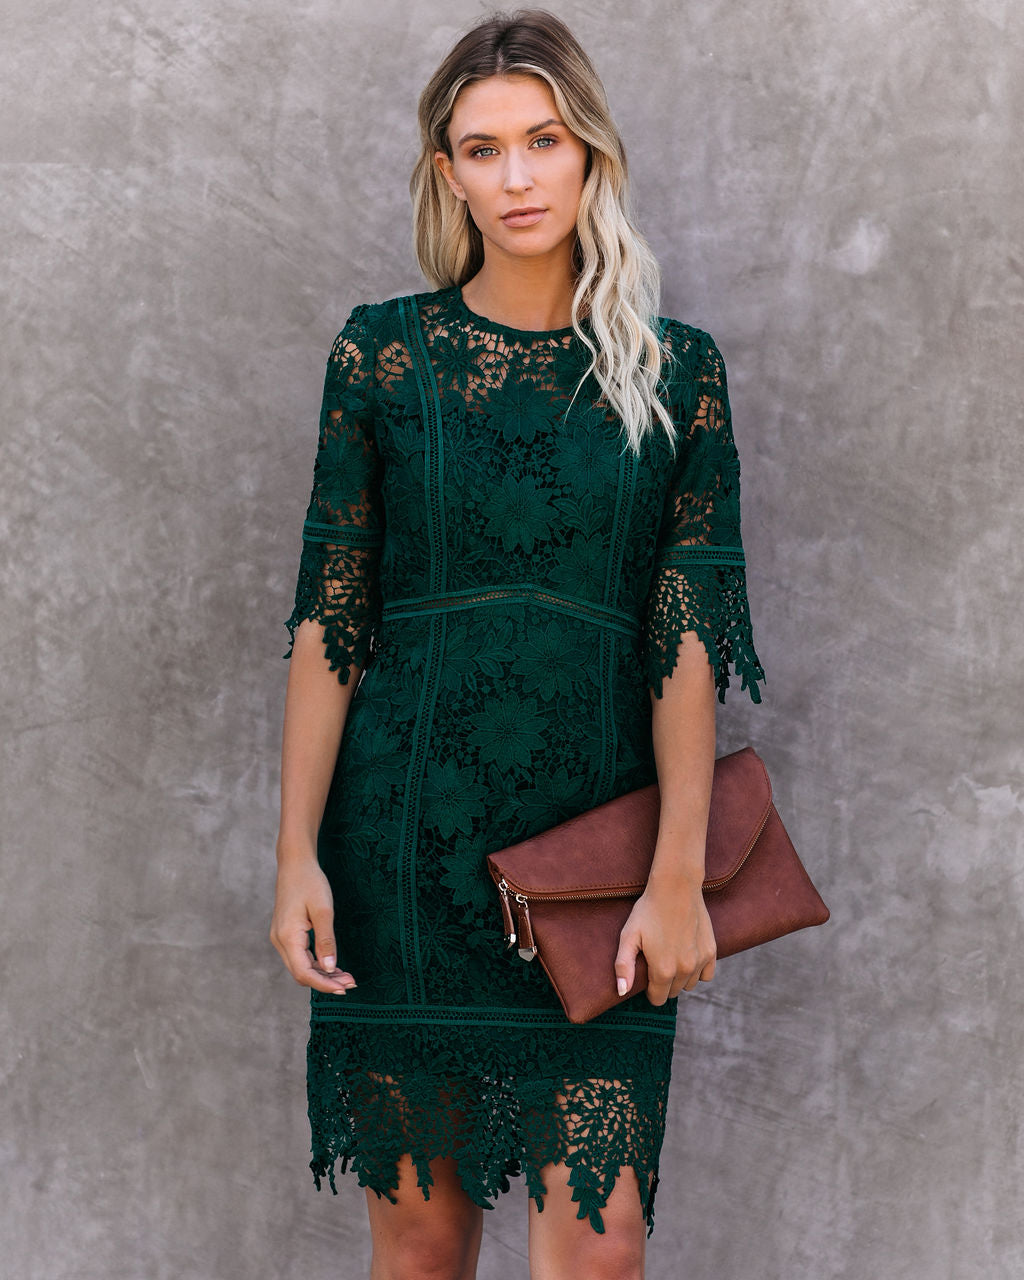 Walla Walla Crochet Lace Dress Final Sale